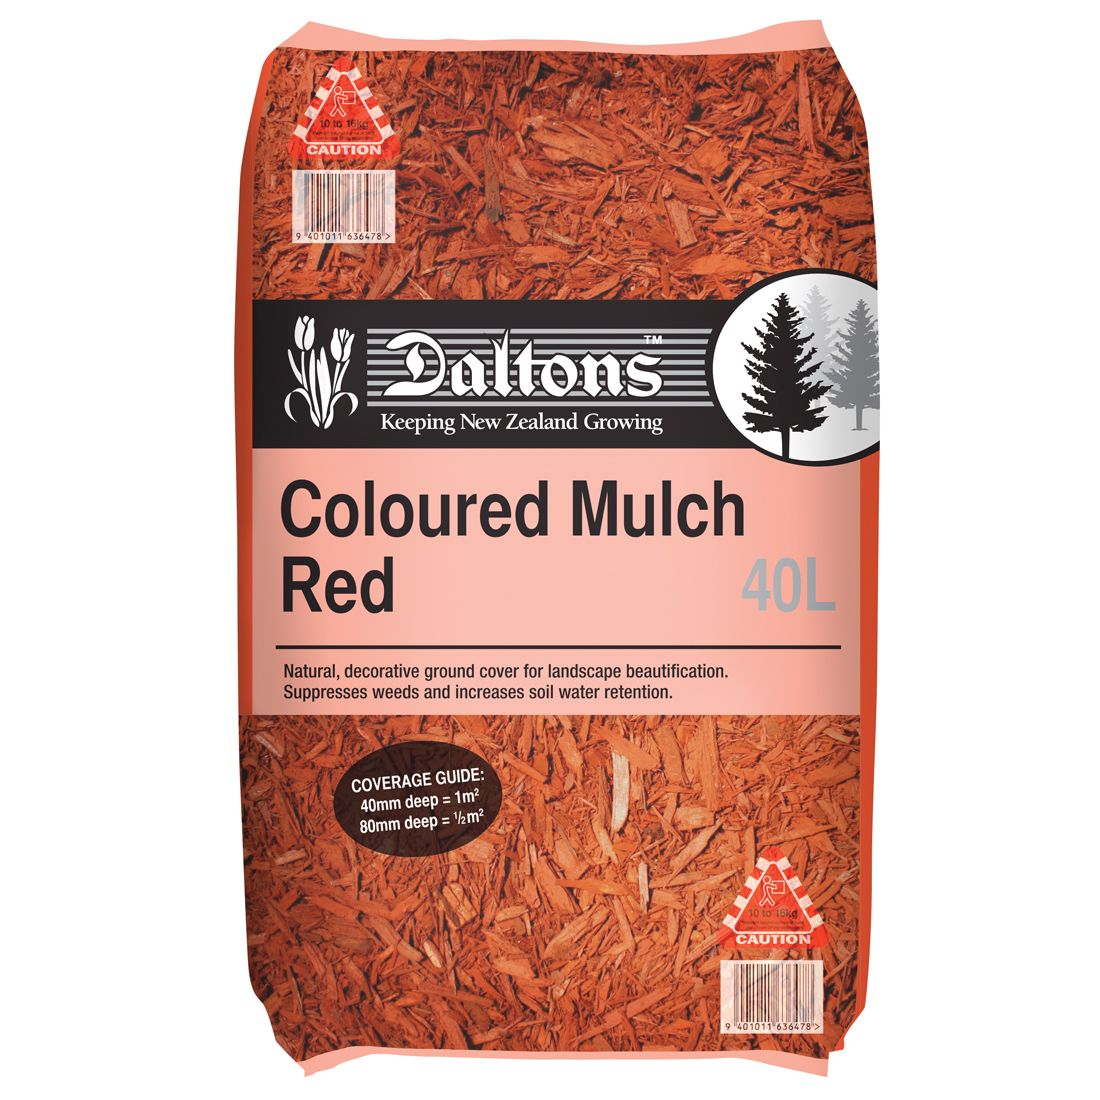 Coloured Mulch Red 40L Bag